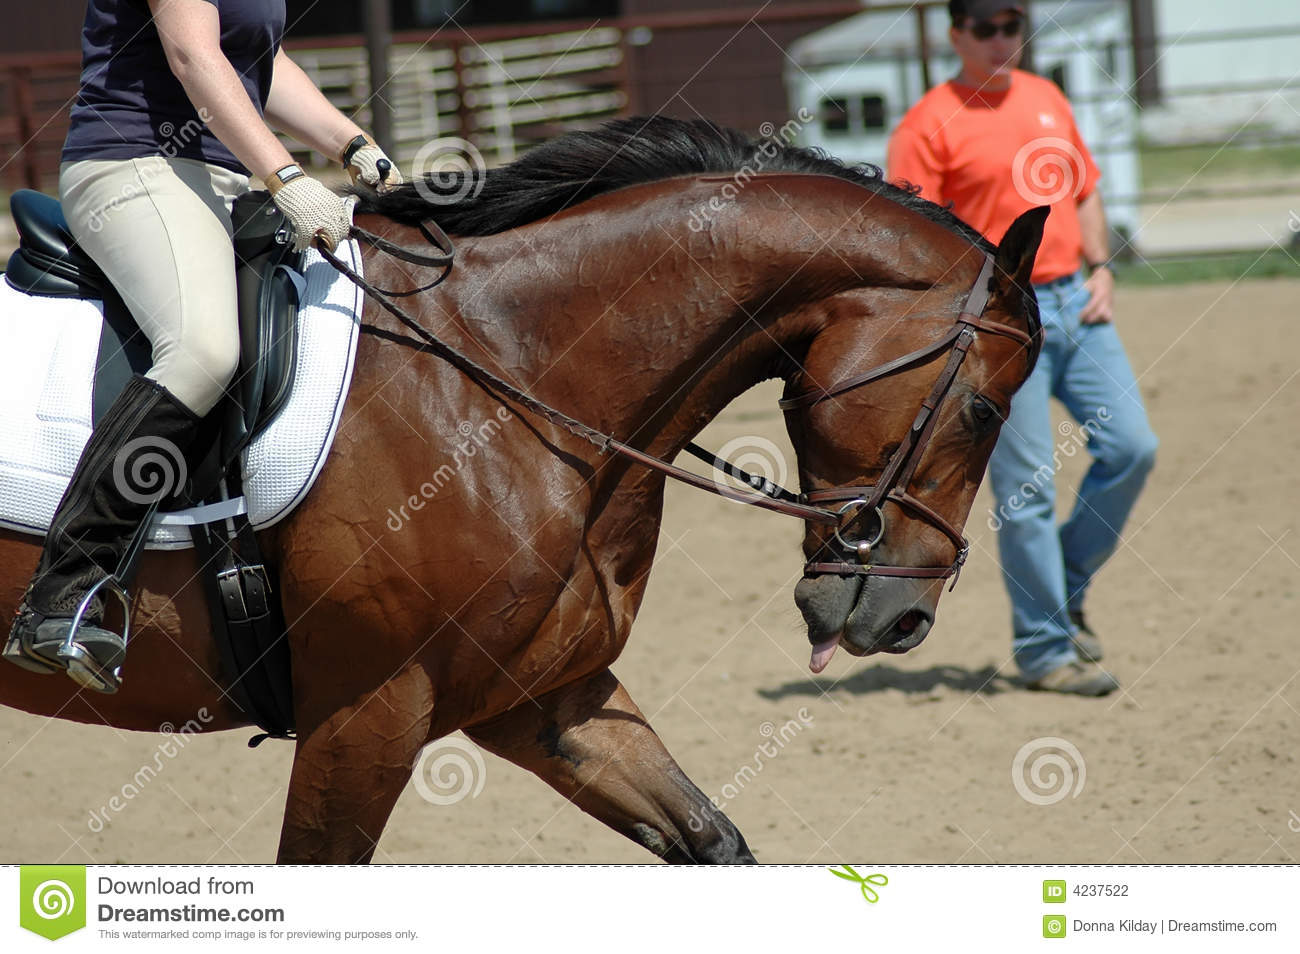 59 best images about Clinton Anderson Down under ... |Horse Training